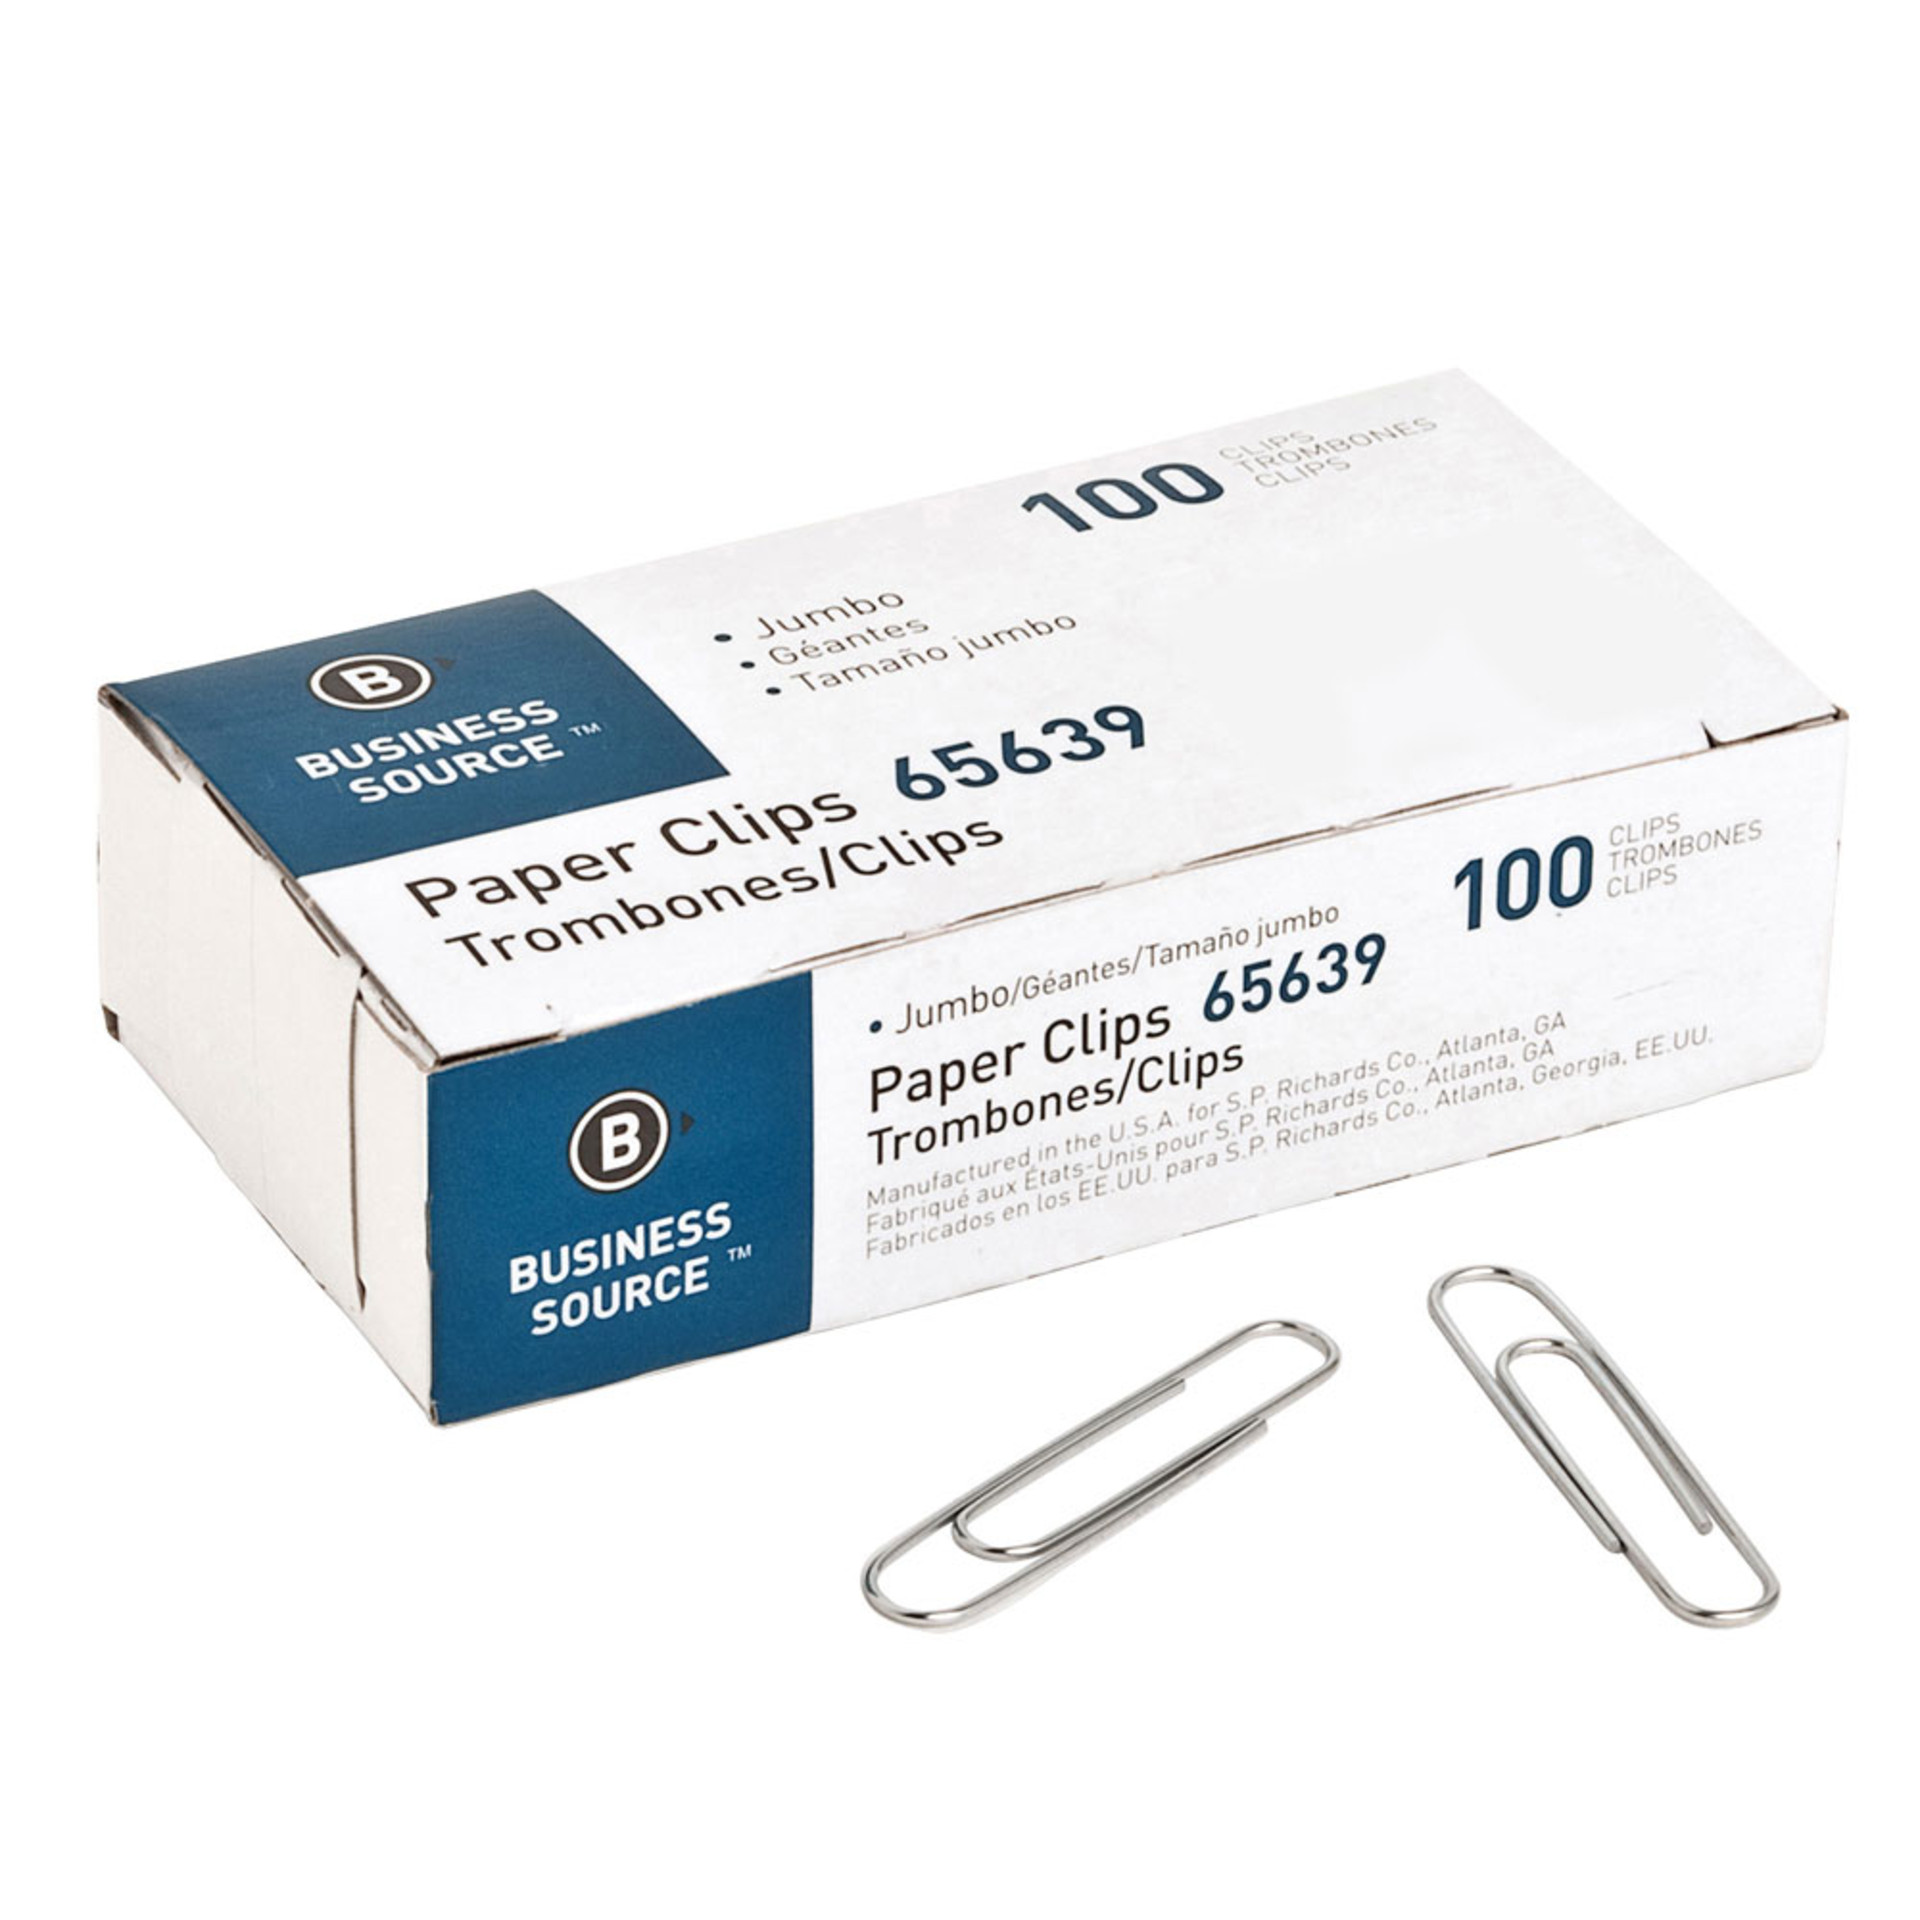 Business Source Silver Jumbo Paper Clips 100 Pack